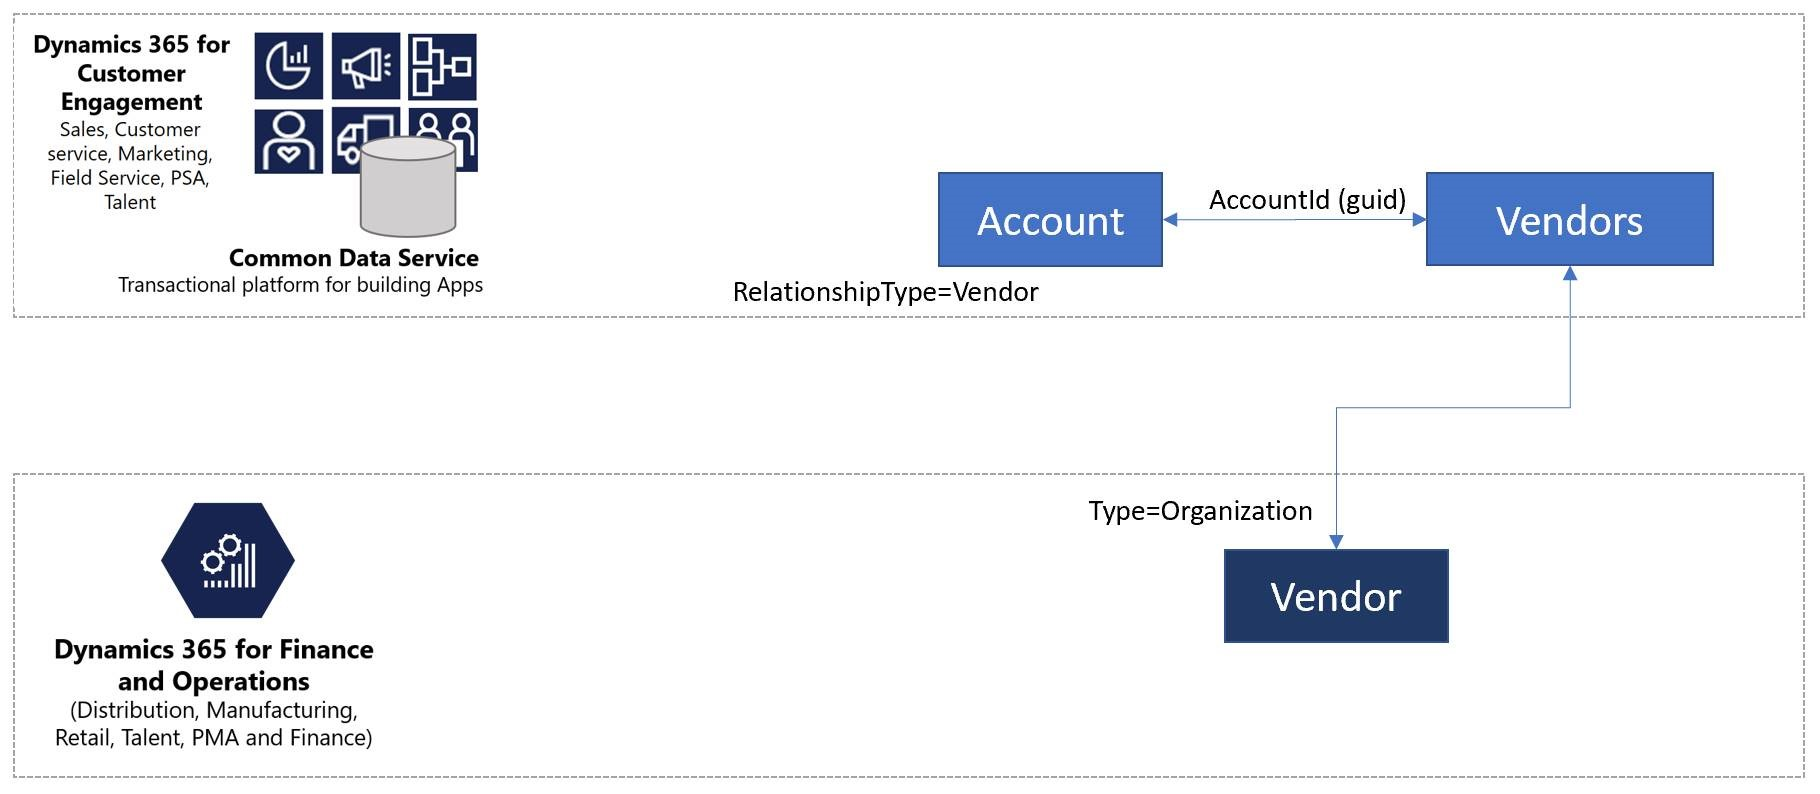 Integrated vendor master - Finance & Operations | Dynamics 365